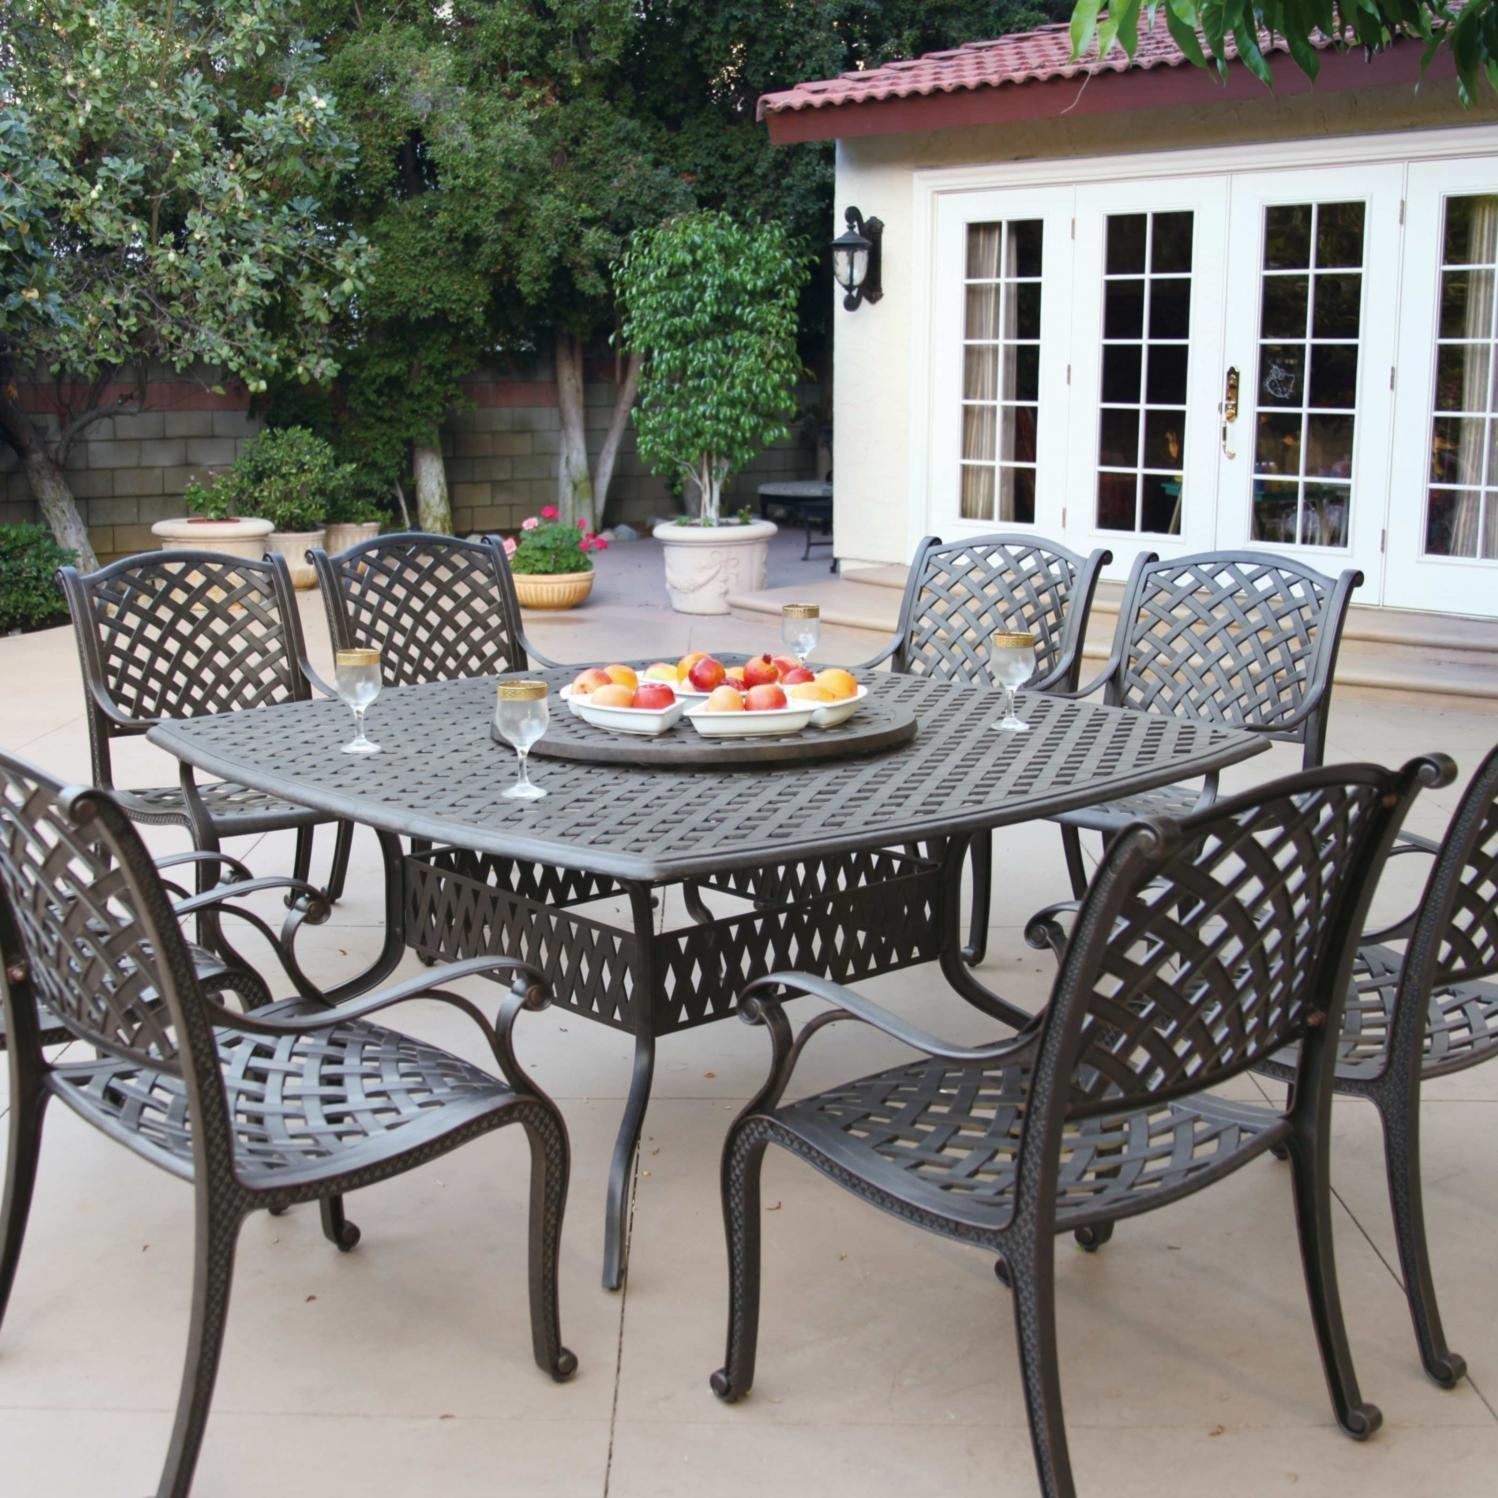 Lombardy 4 Person Sling Patio Dining Set With Glass Top